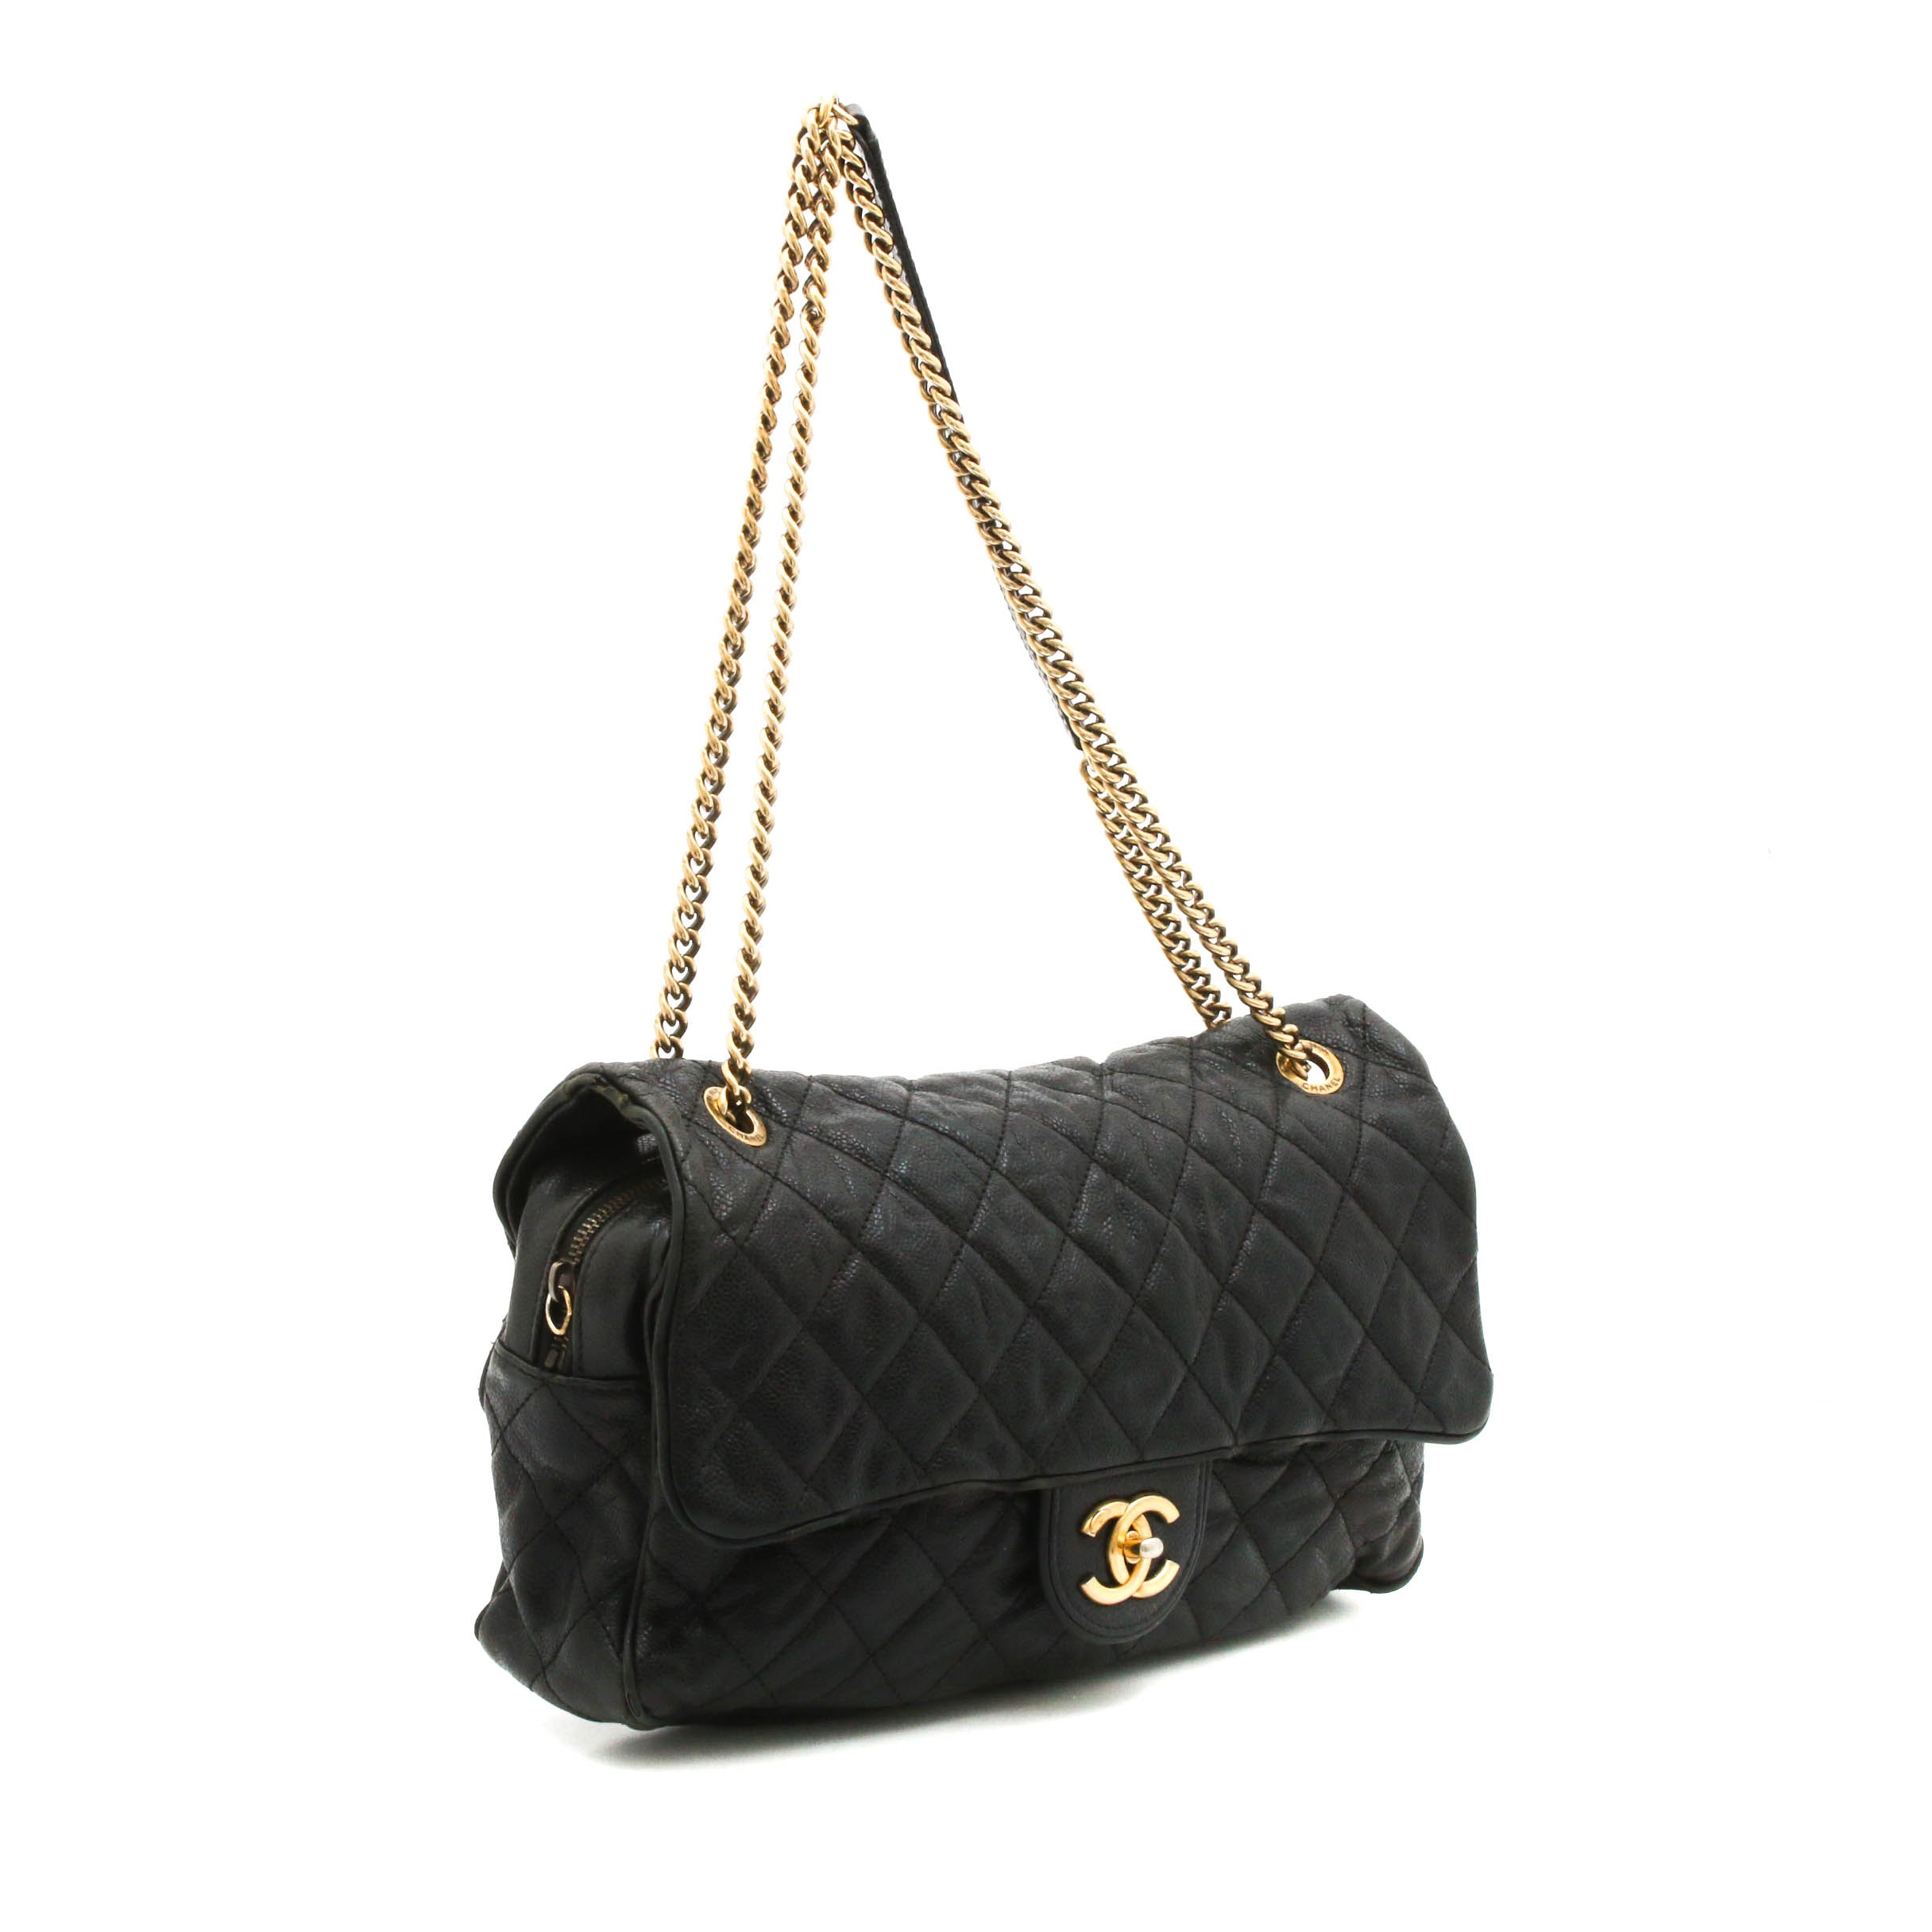 Chanel Quilted Black Caviar Leather Jumbo Flap Chain Strap Shoulder Bag